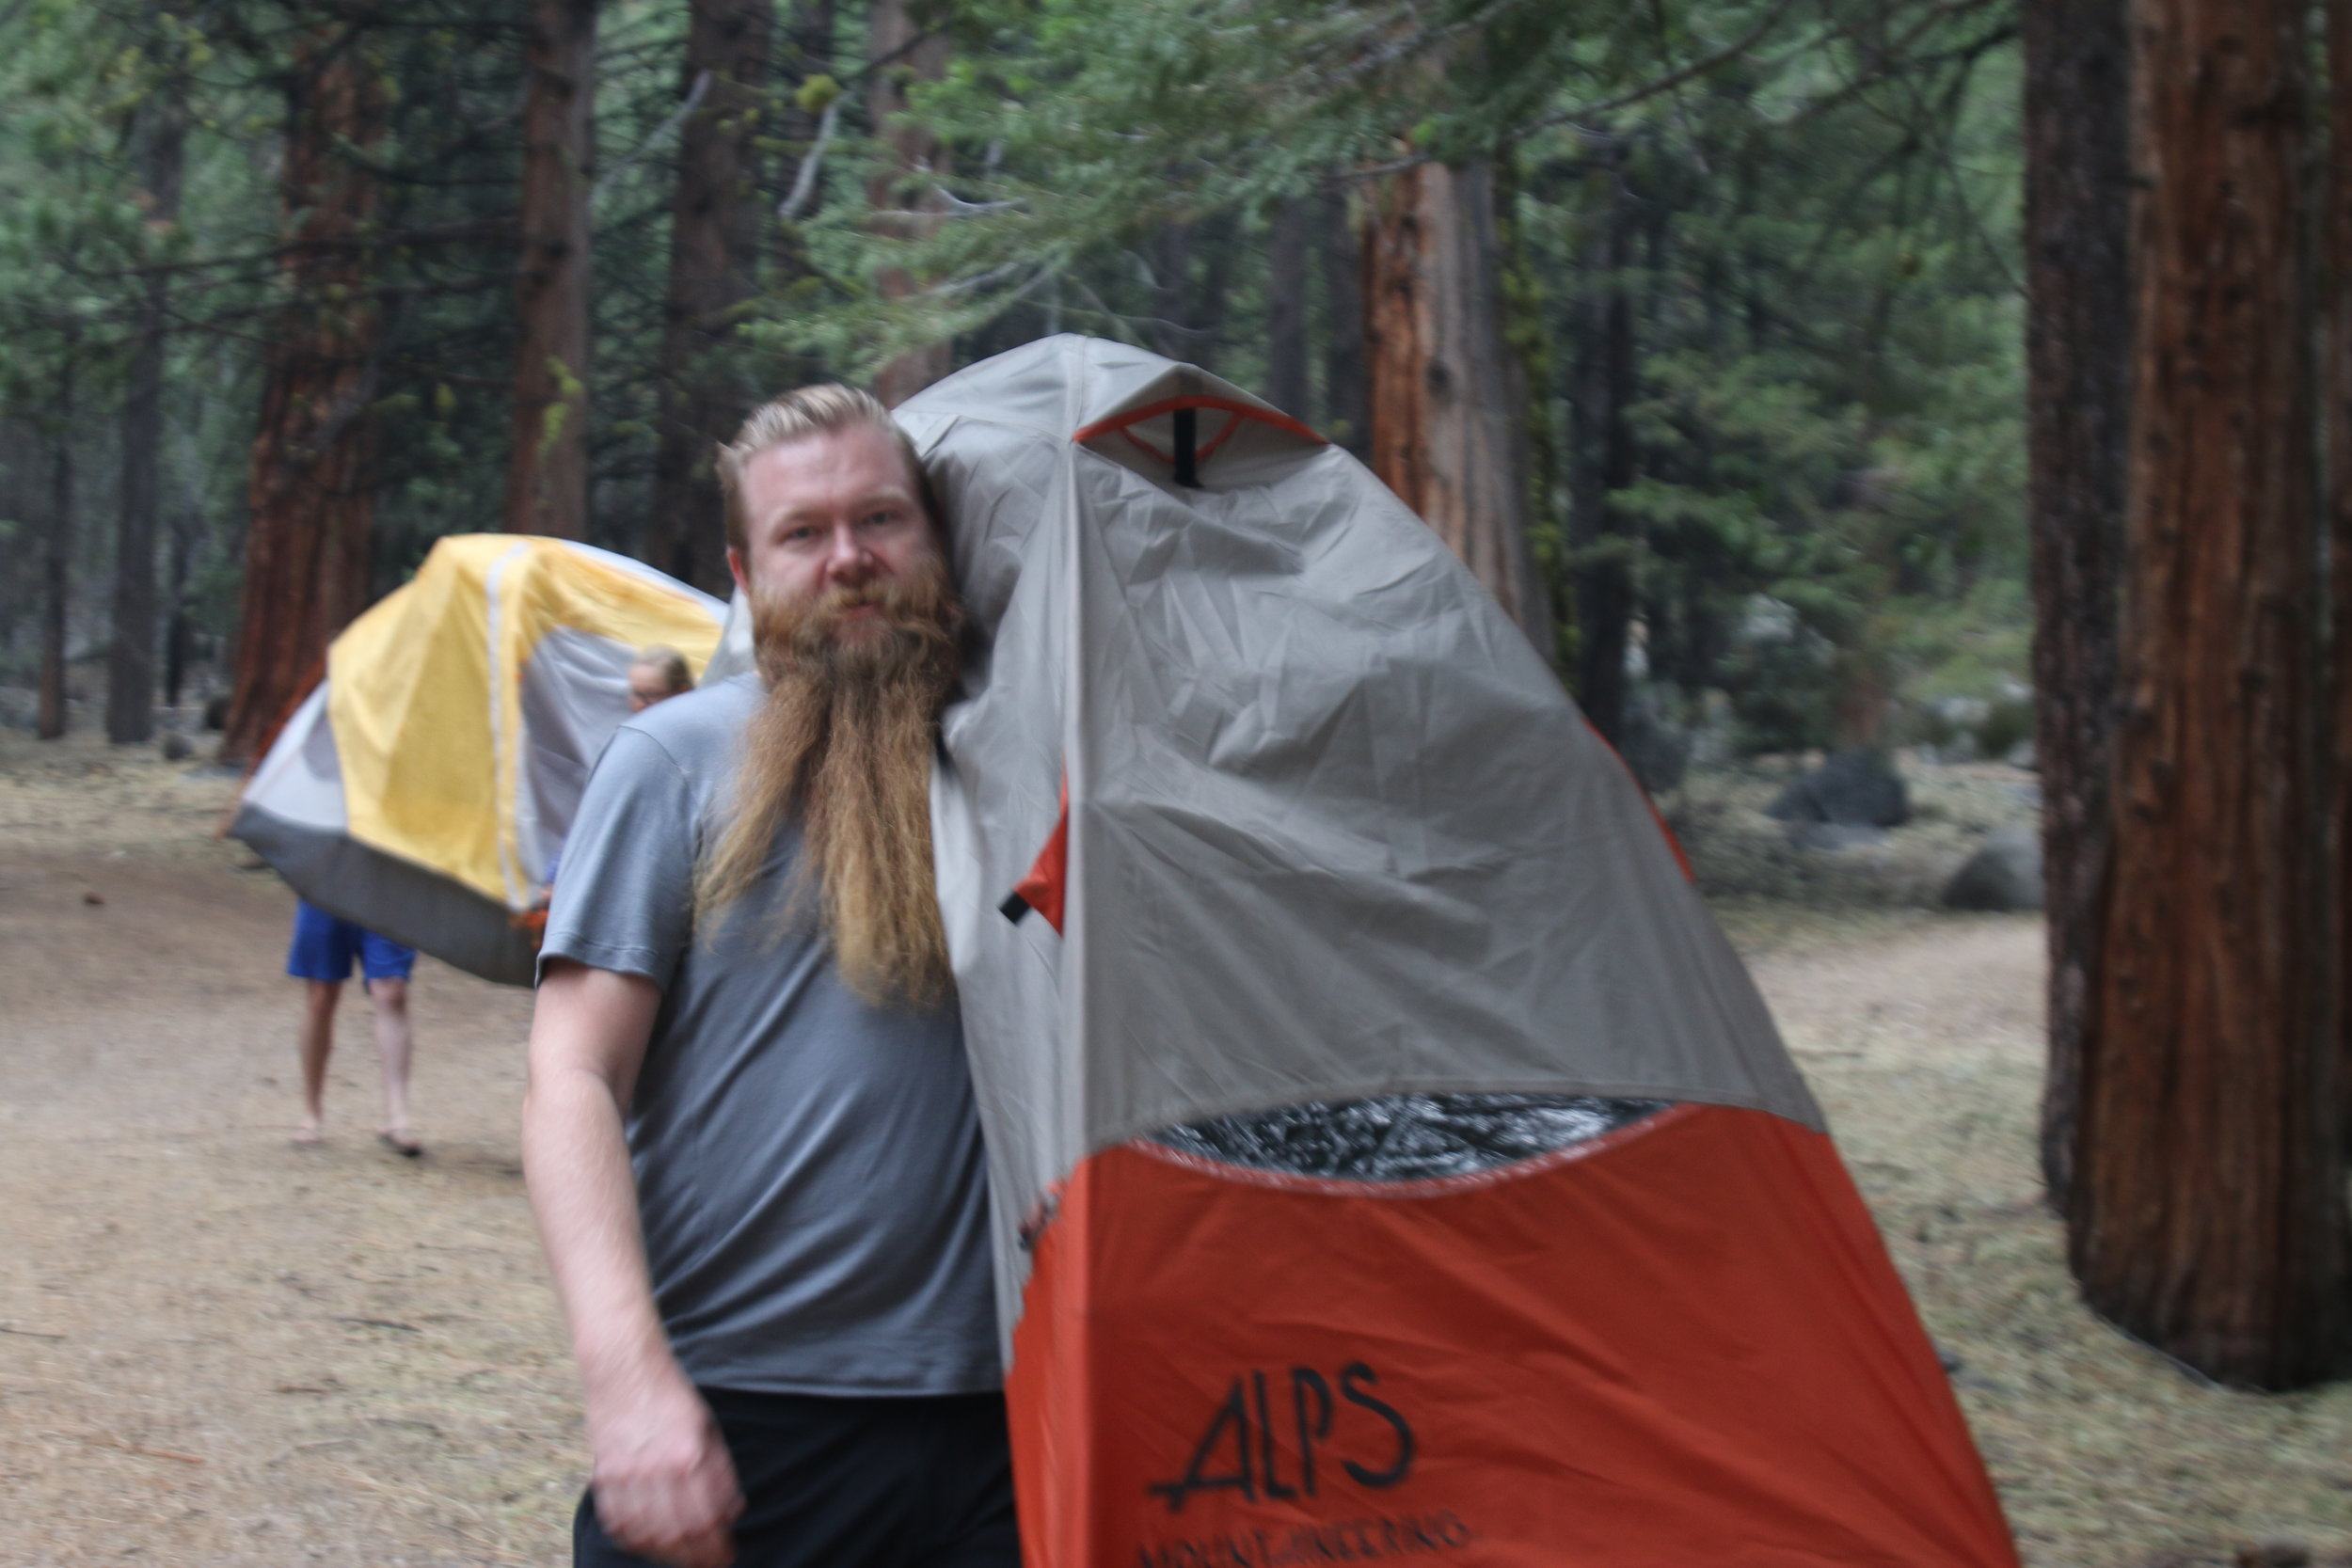 Some people choose to camp in tents they bring themselves.